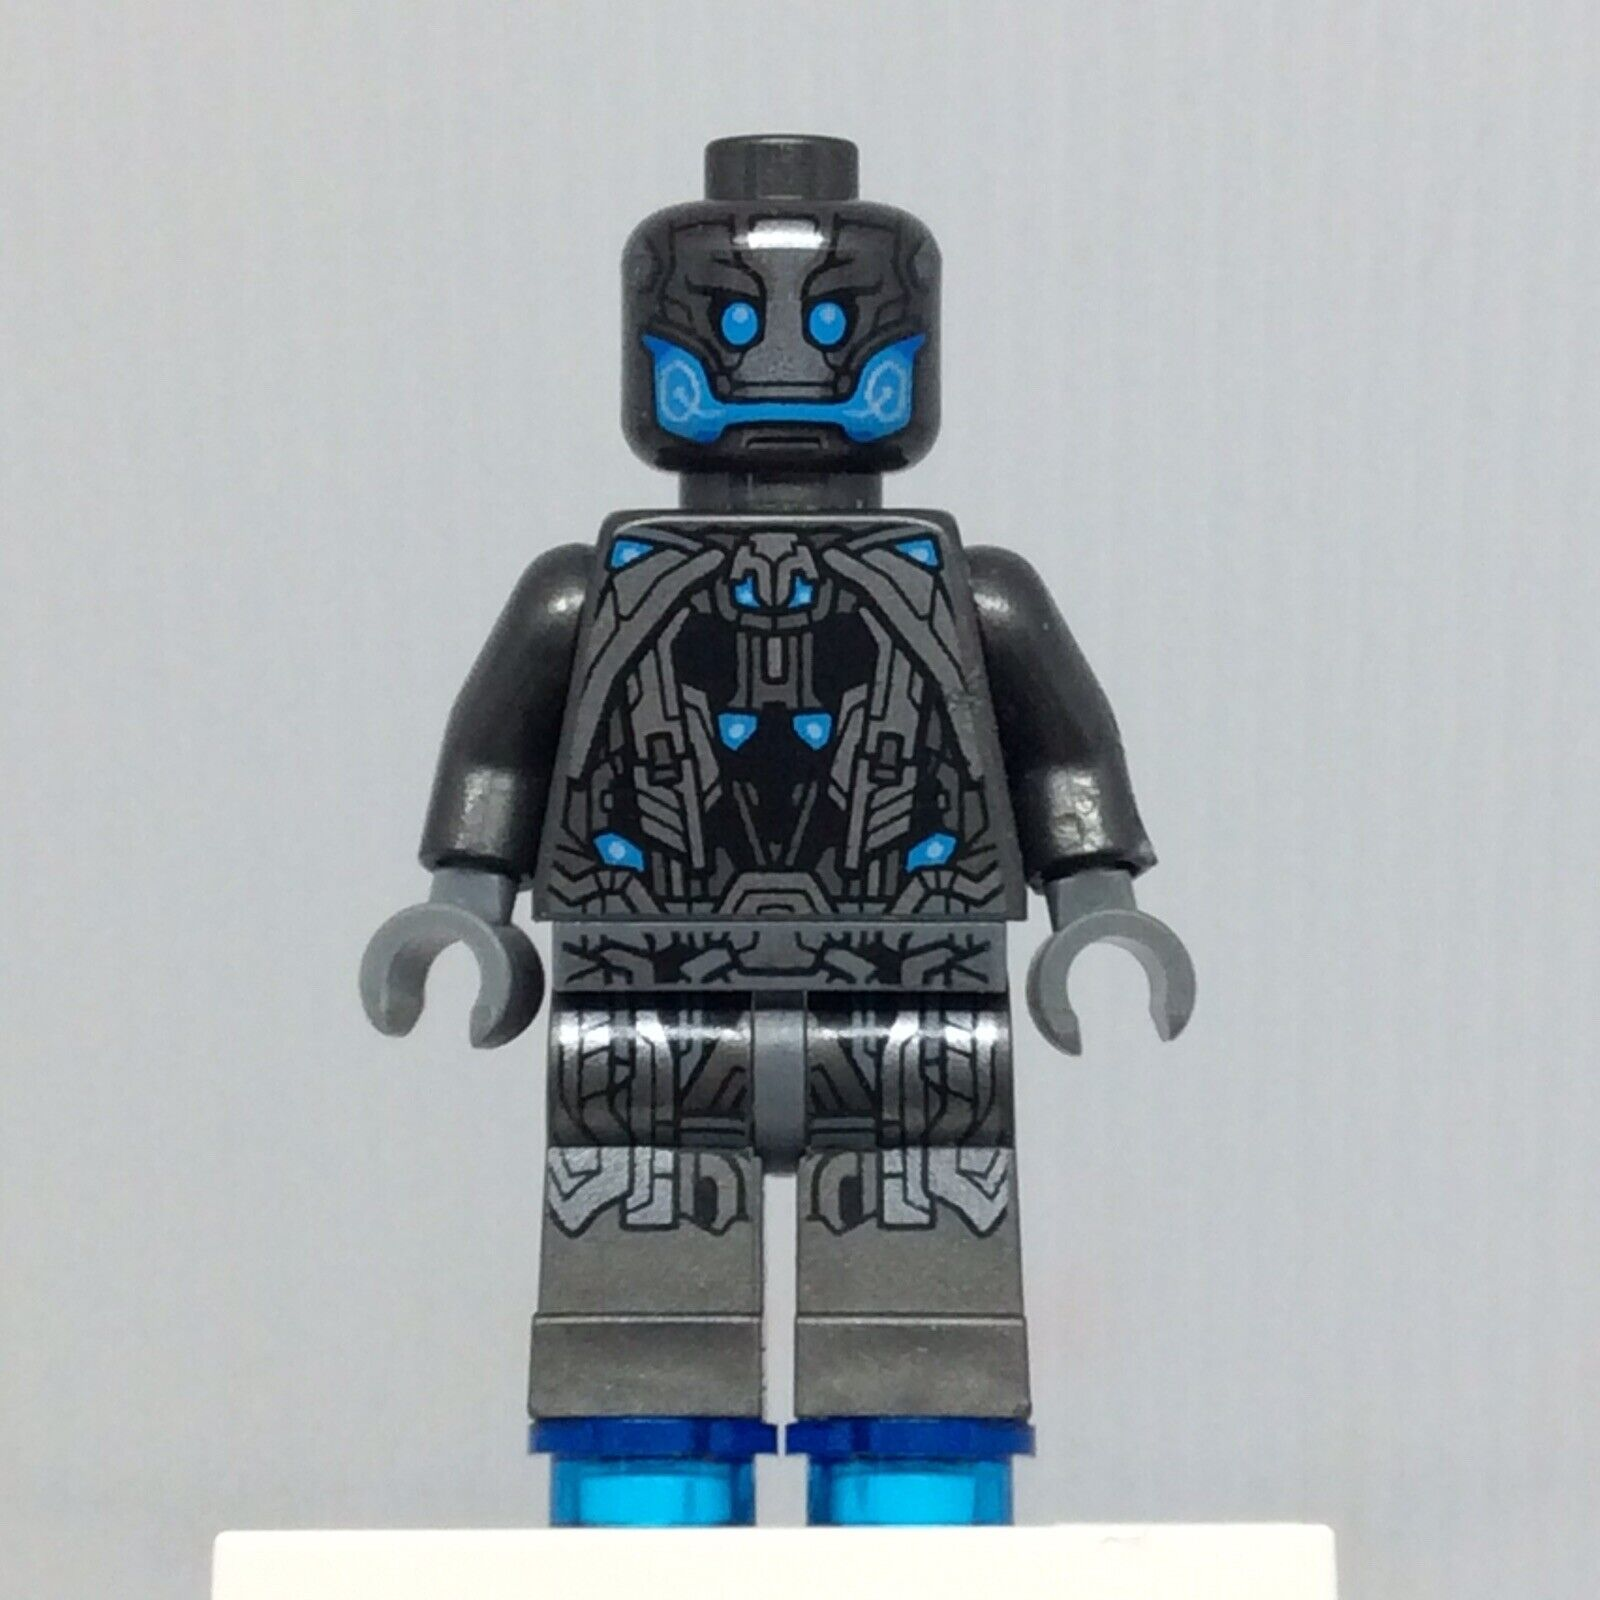 LEGO MINIFIGURE SH166 SUPER HEROES ULTRON SENTRY AS PER PICTURE